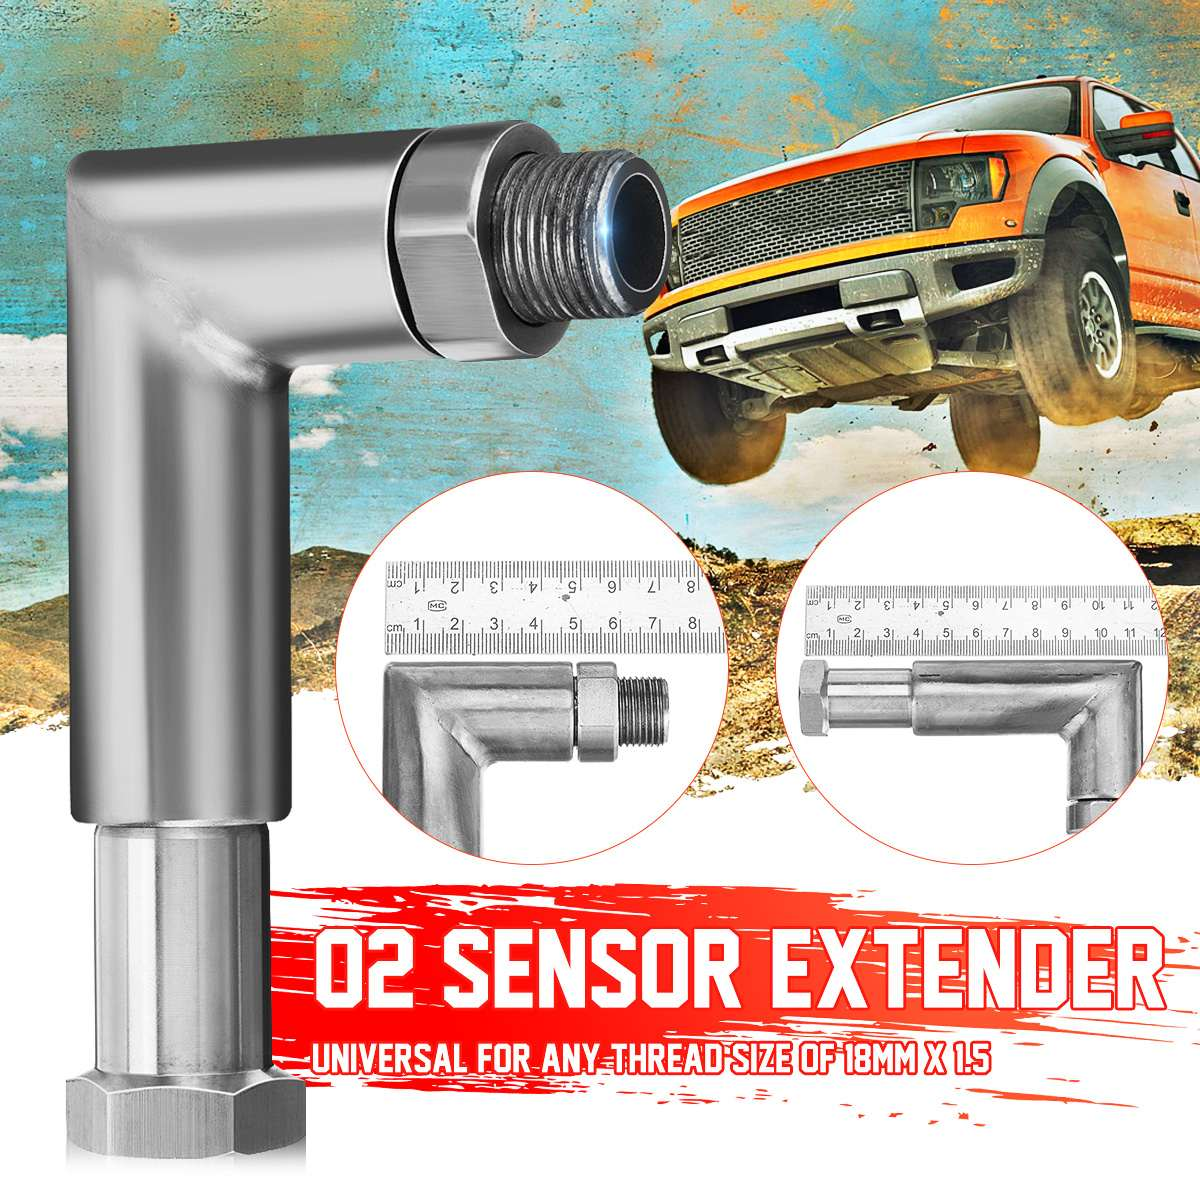 Universal <font><b>M18</b></font> <font><b>x</b></font> <font><b>1.5</b></font> O2 Oxygen Sensor Extender Spacer Angled 90 Degree O2 Bung Extension Catalytic Converter image